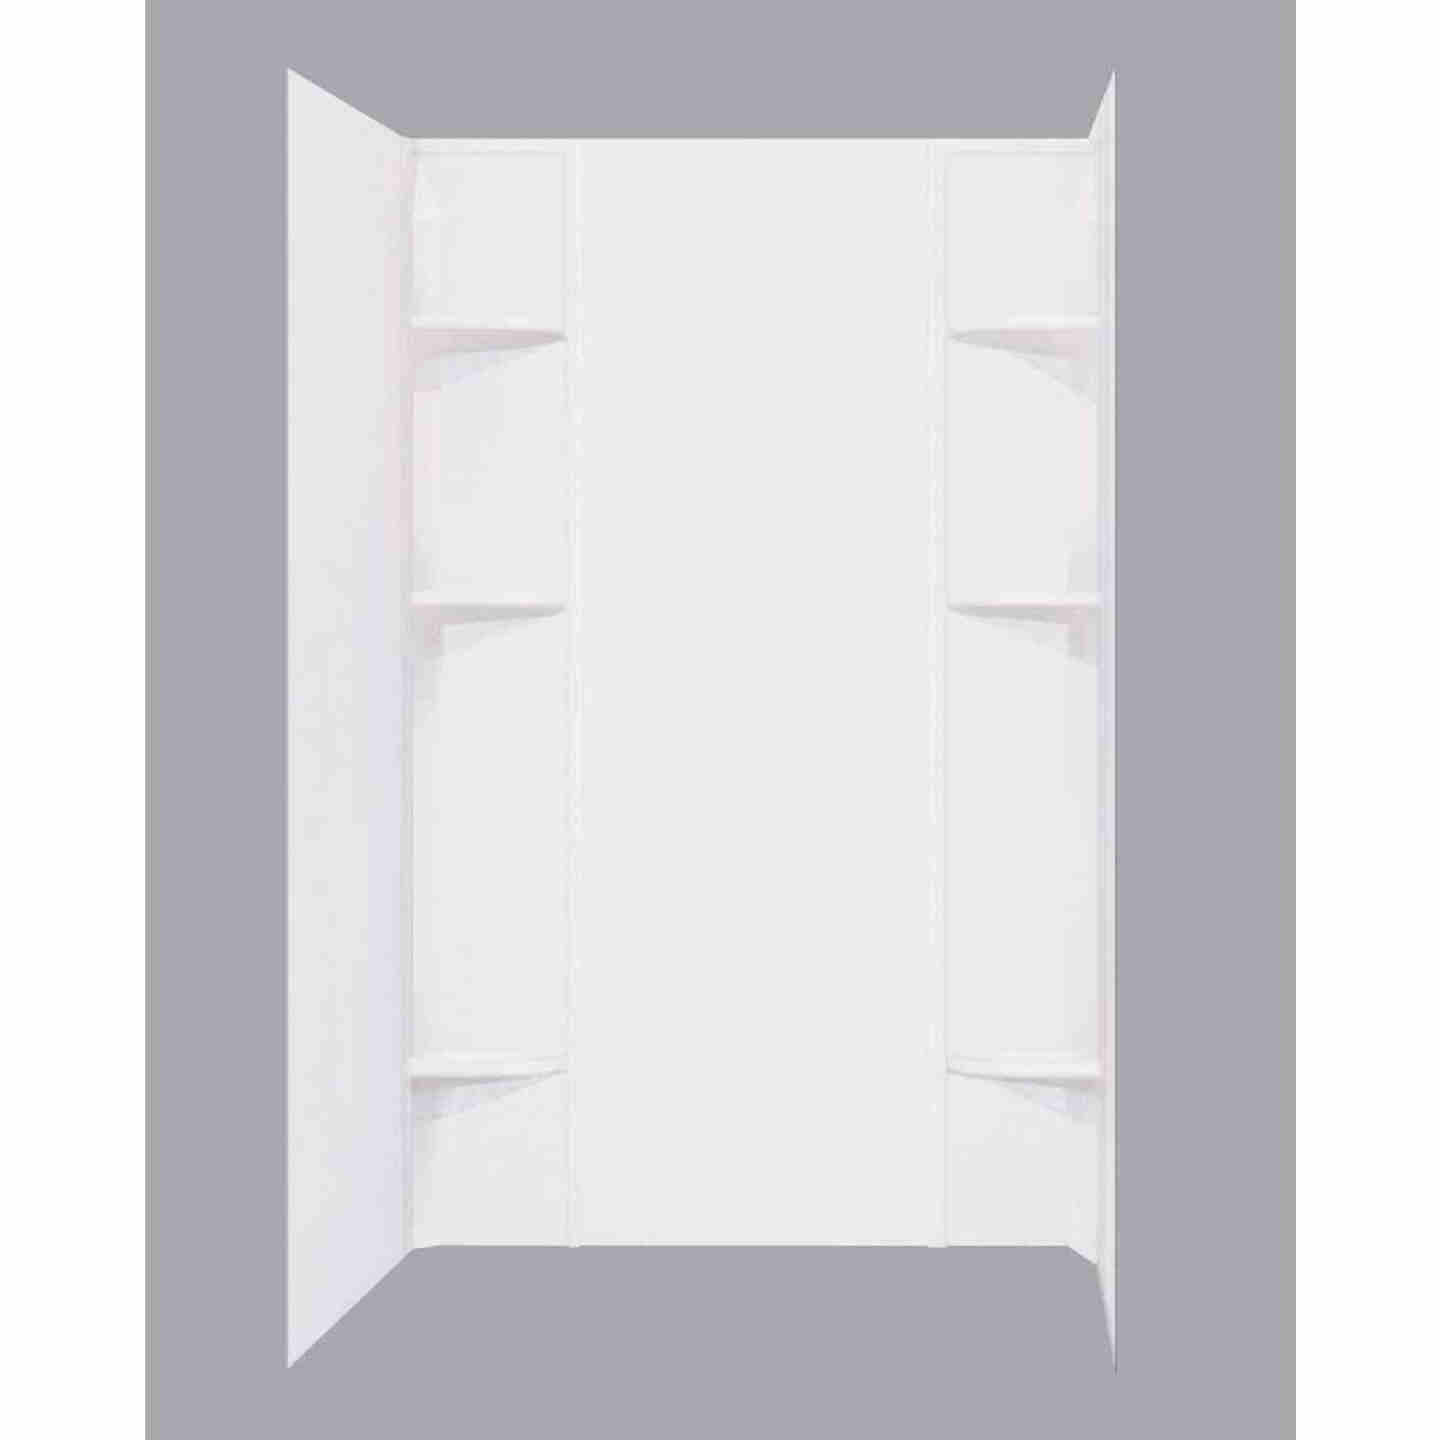 Mustee Durawall Model 260 5-Piece 60 In. W x 40 In. D Shower Wall Set in White Image 1